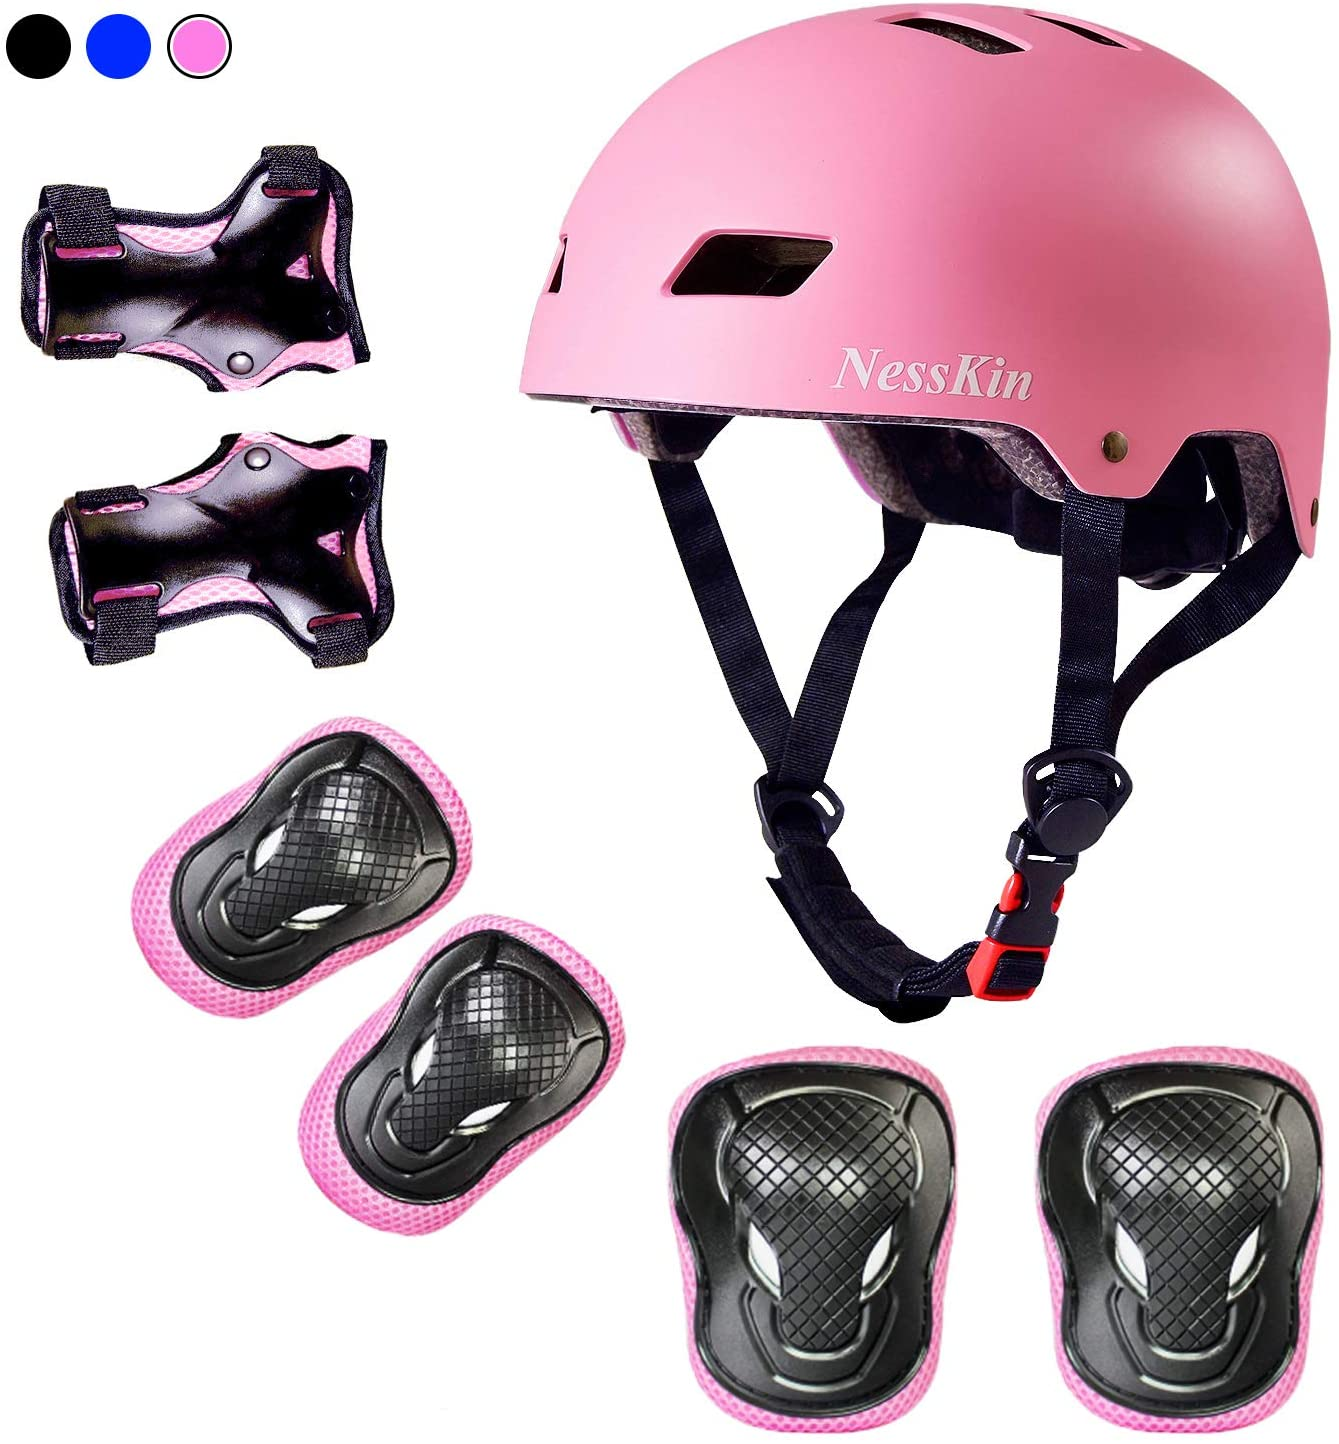 NESSKIN Kids Skateboard Protective Gear Set ,Adjustable Helmet Knee Pads Elbow Pads Wrist Guards Suitable for Ages 3-8 Years Boys Girls for Bike Scooter Roller Skating